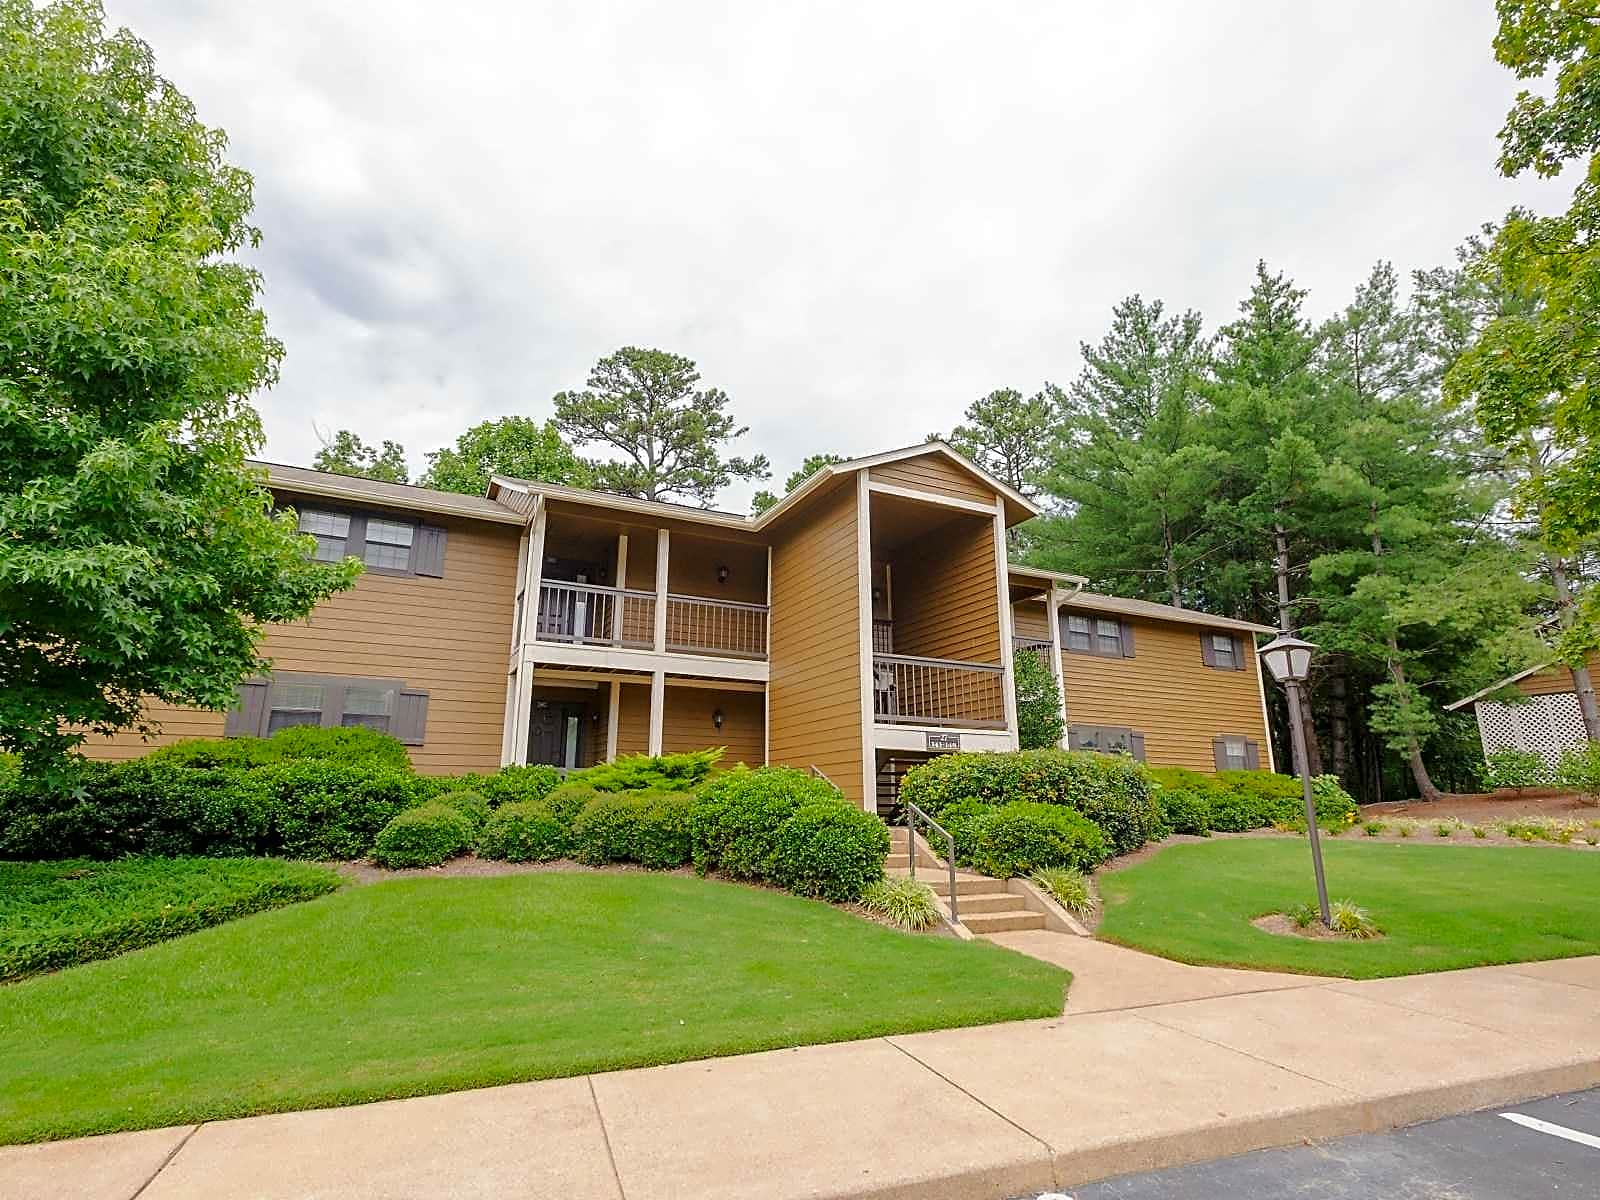 Photo: Chattanooga Apartment for Rent - $1345.00 / month; 3 Bd & 2 Ba